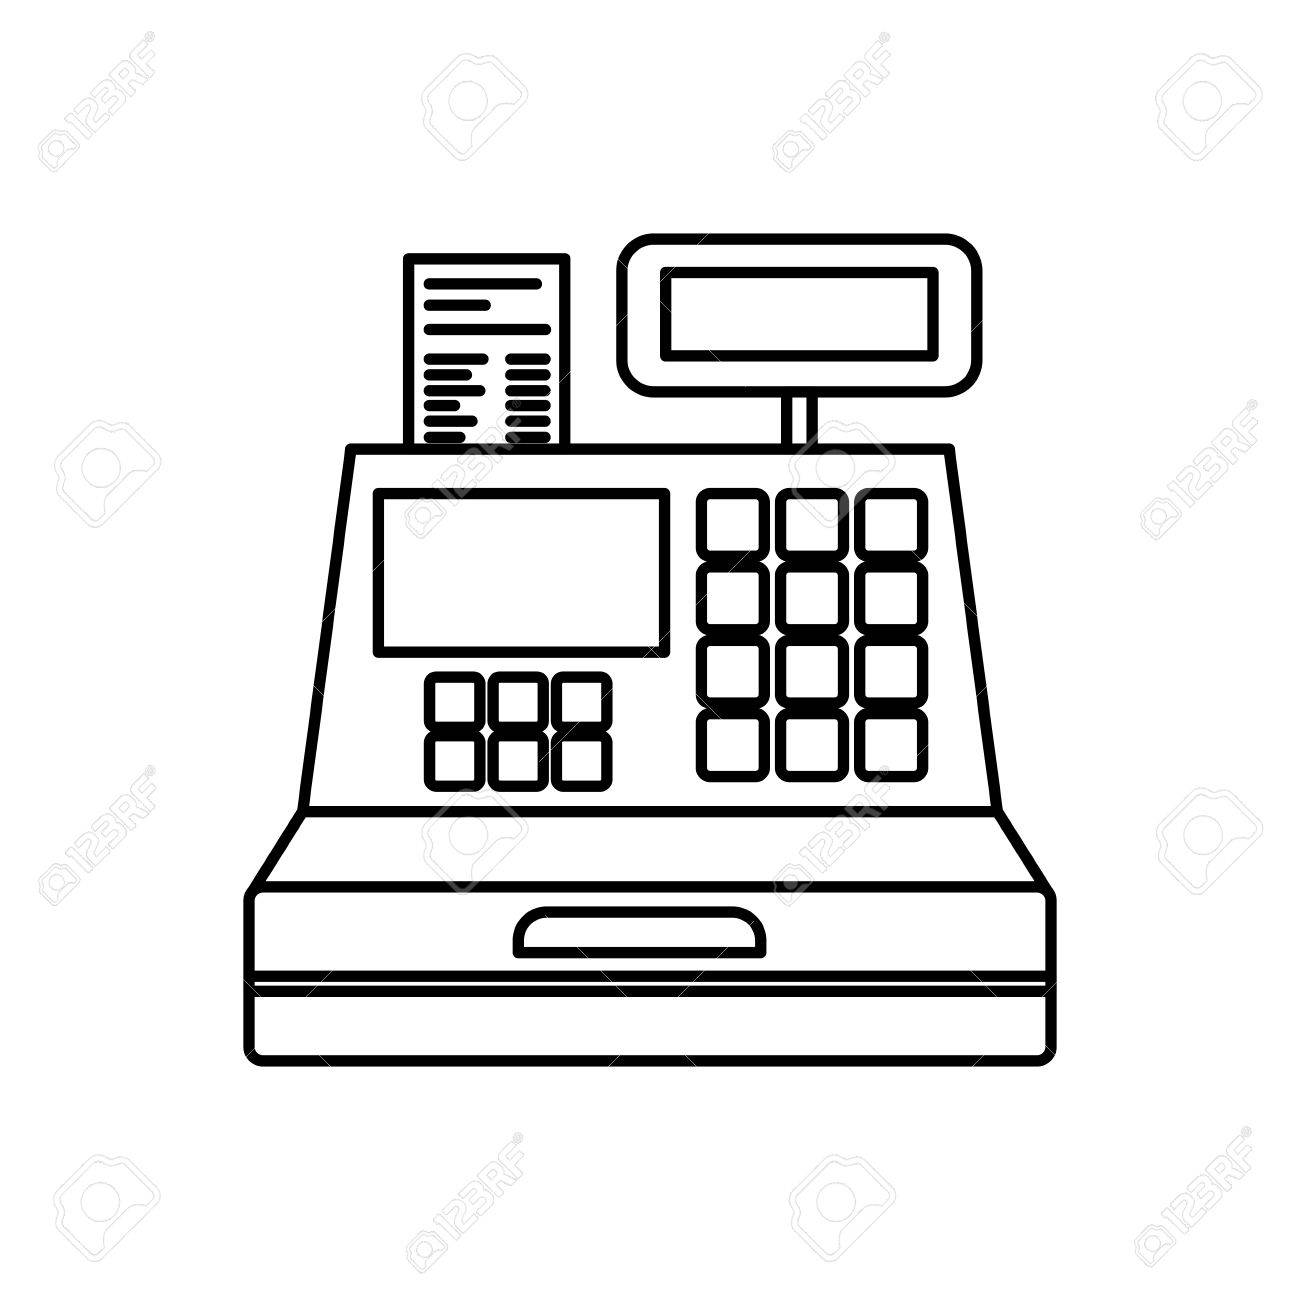 black silhouette of cash register vector illustration.